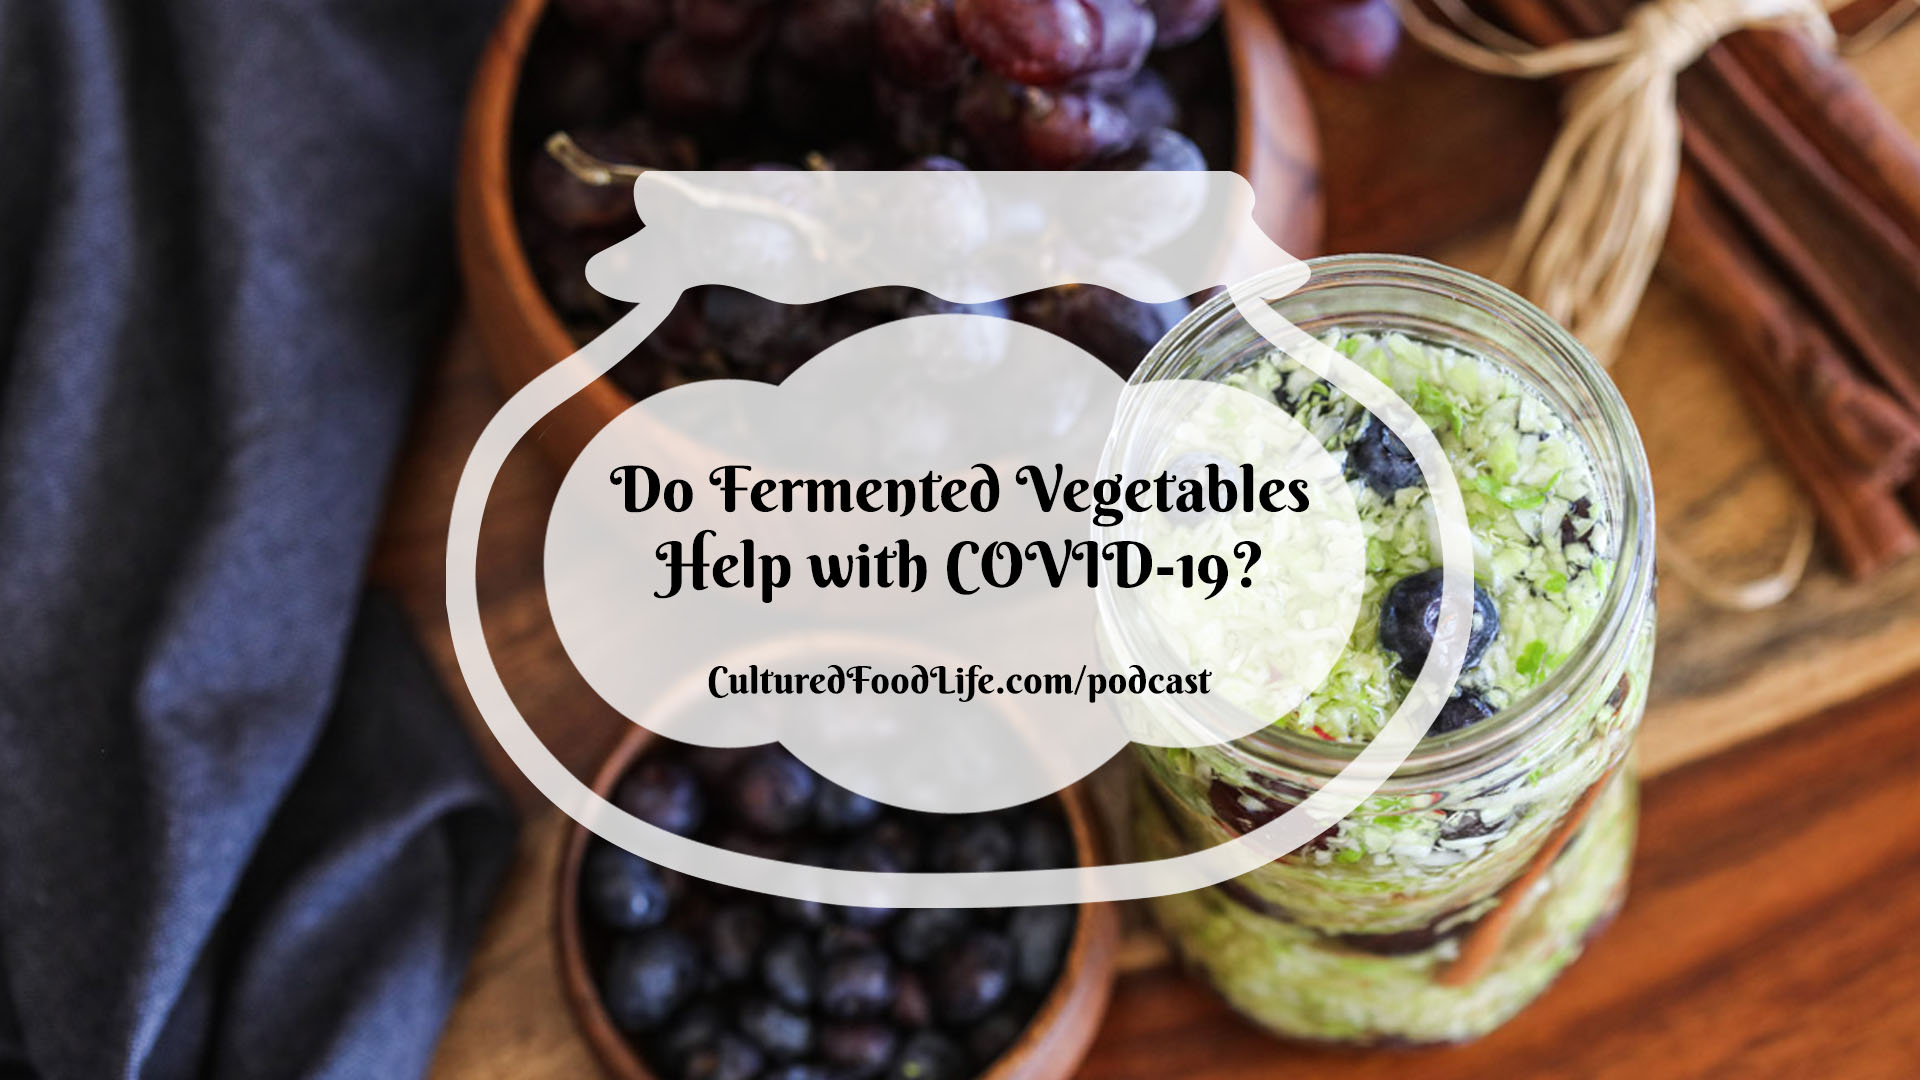 Do Fermented Vegetables Help with COVID-19 Full